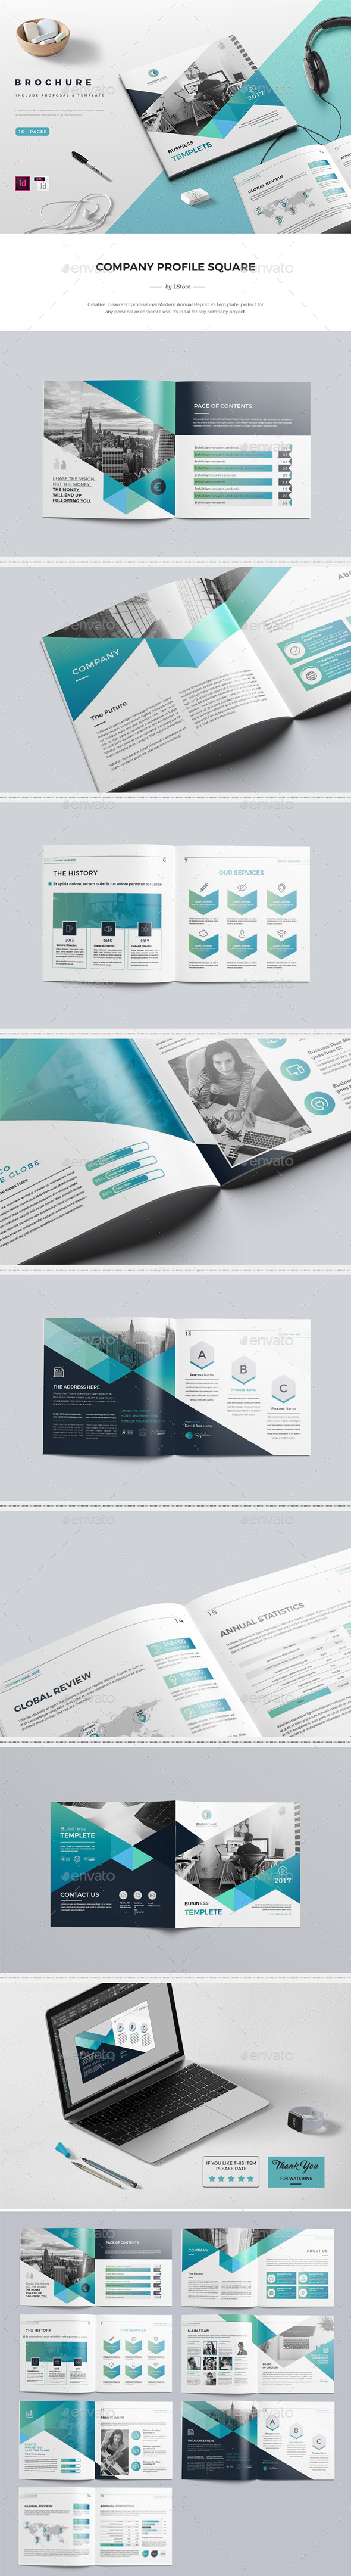 Company Profile Square Brochure. 16 Pages - Corporate Brochures